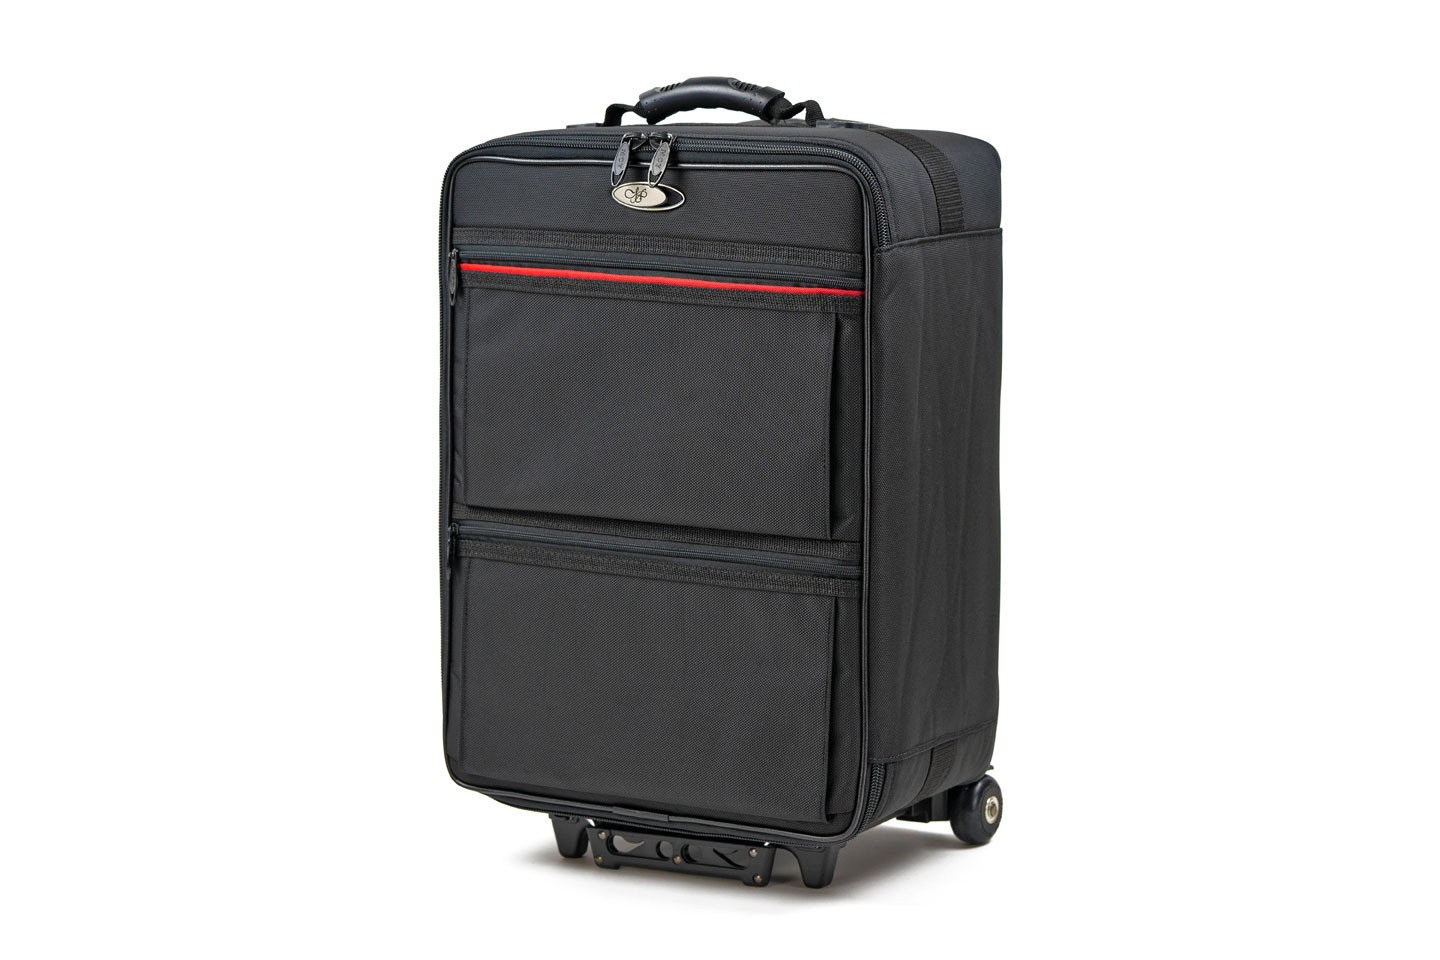 <h1>CAMLUG LG</h1><p>Professional Video Camera Luggage</p>